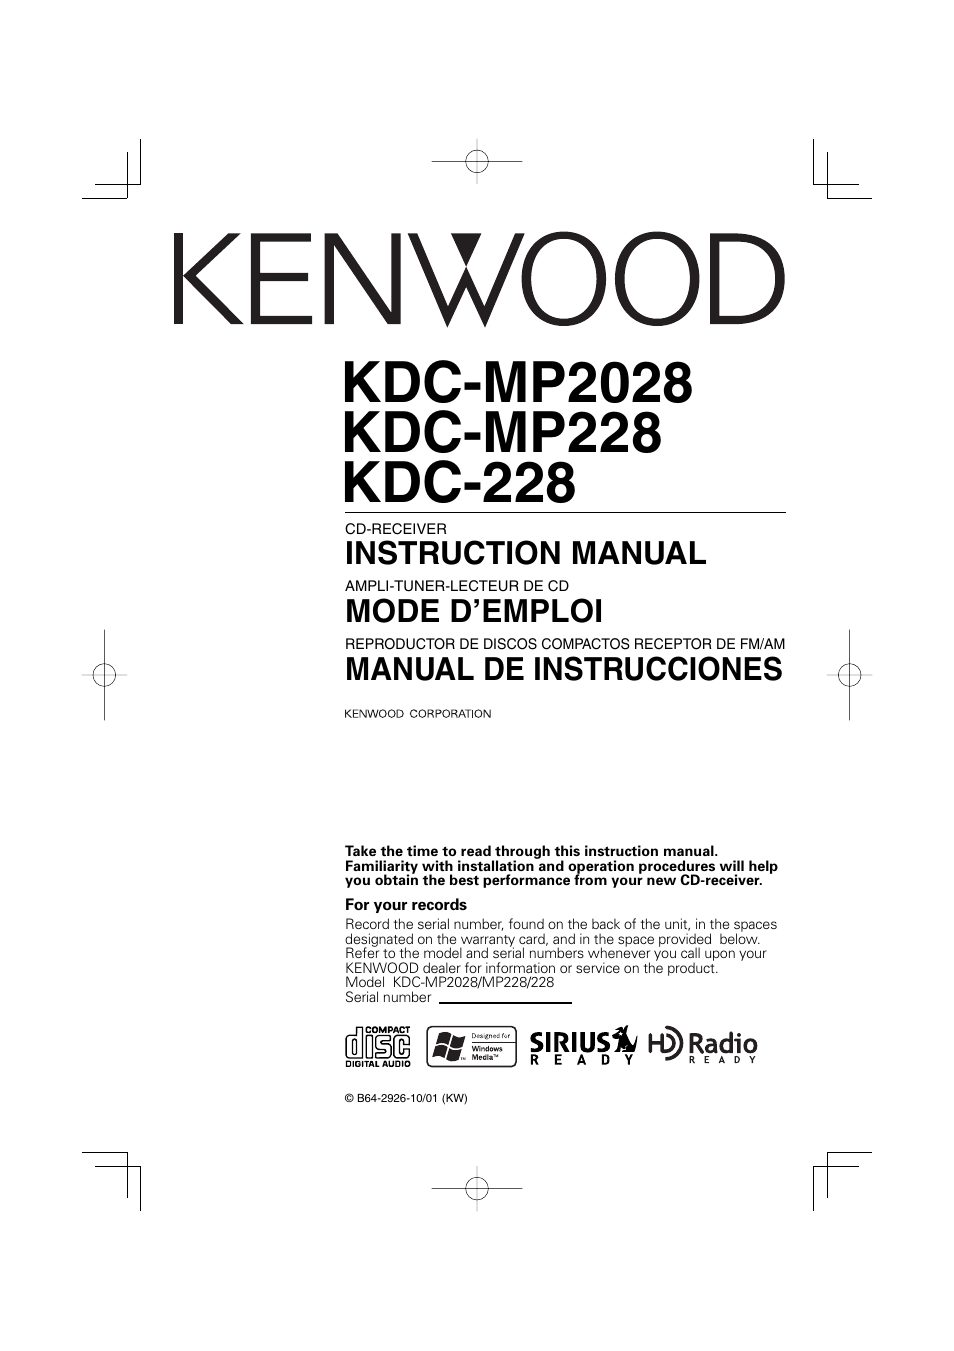 Kenwood Kdc Mp228 Manual Browse Guides 252u Cd Player Wiring Diagram 228 User 96 Pages Rh Manualsdir Com Harness